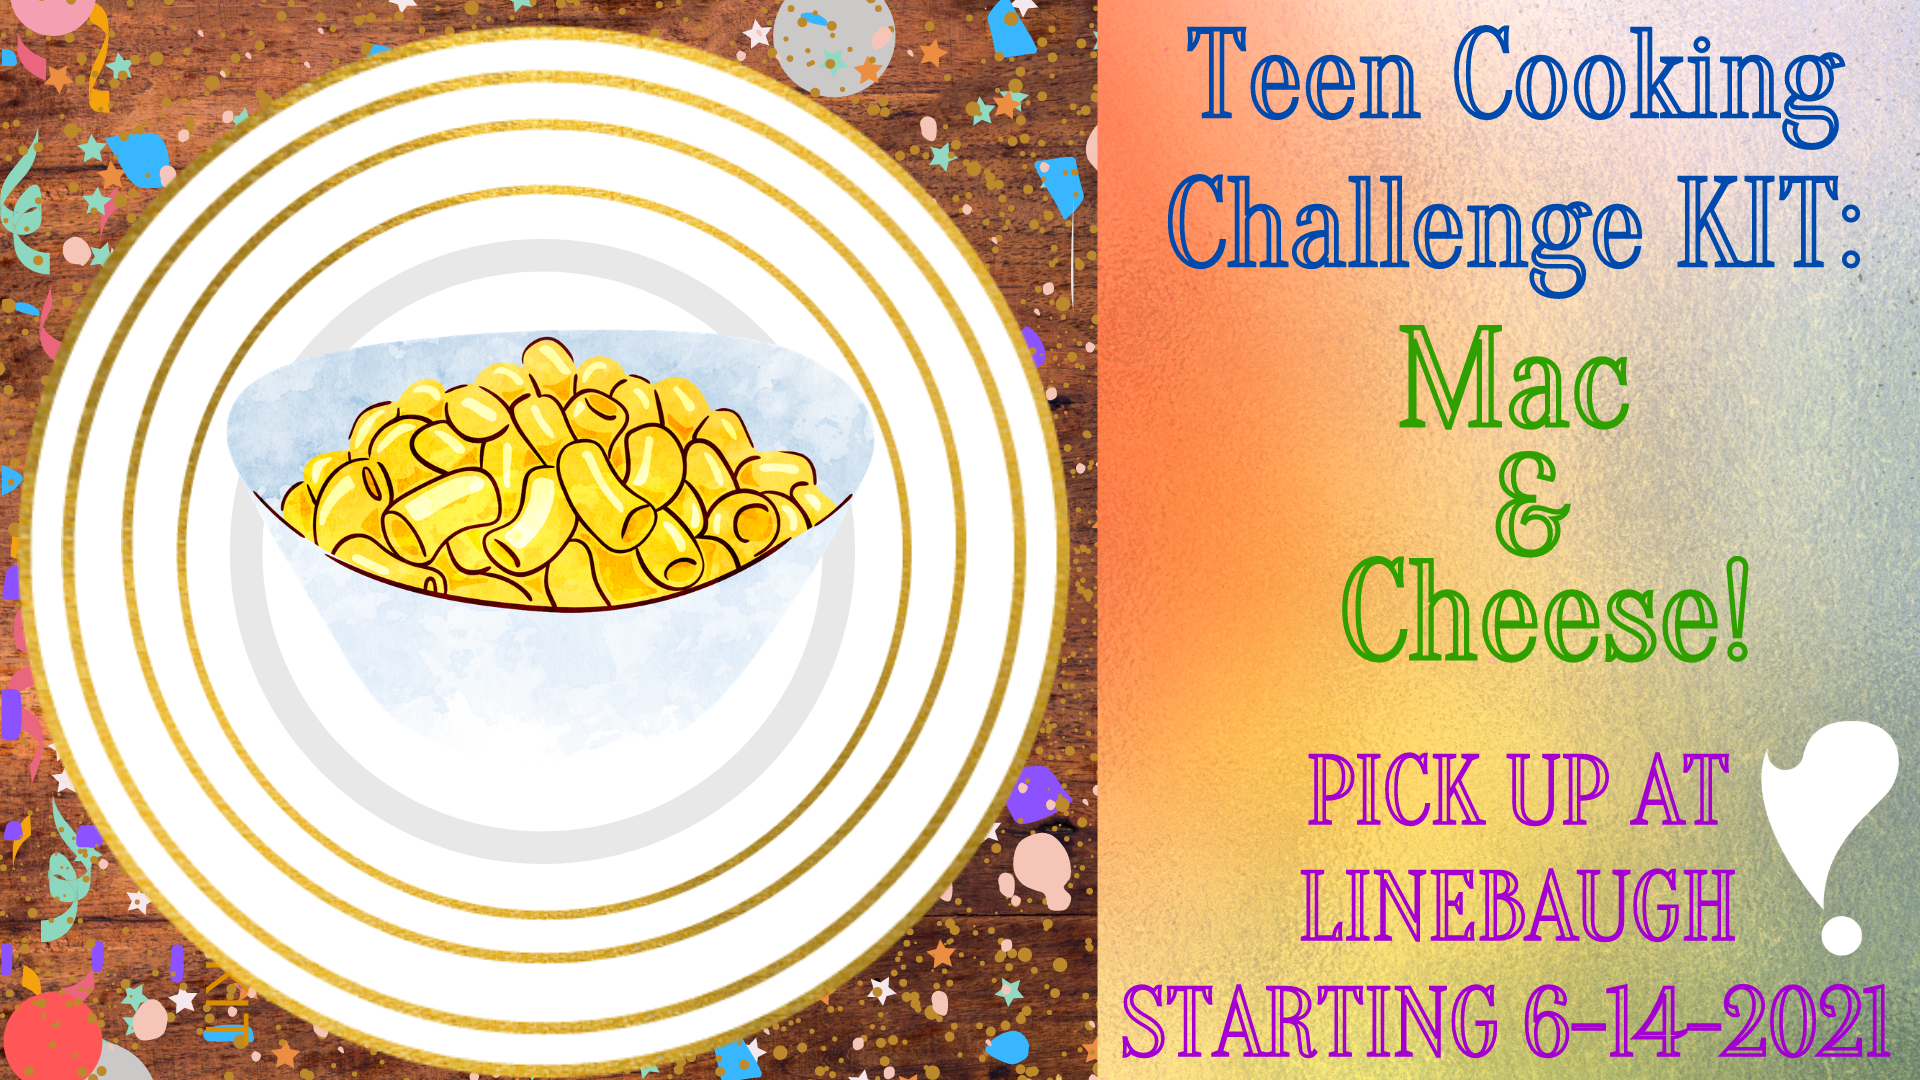 Teen Cooking Challenge Kits: Mac and Cheese!